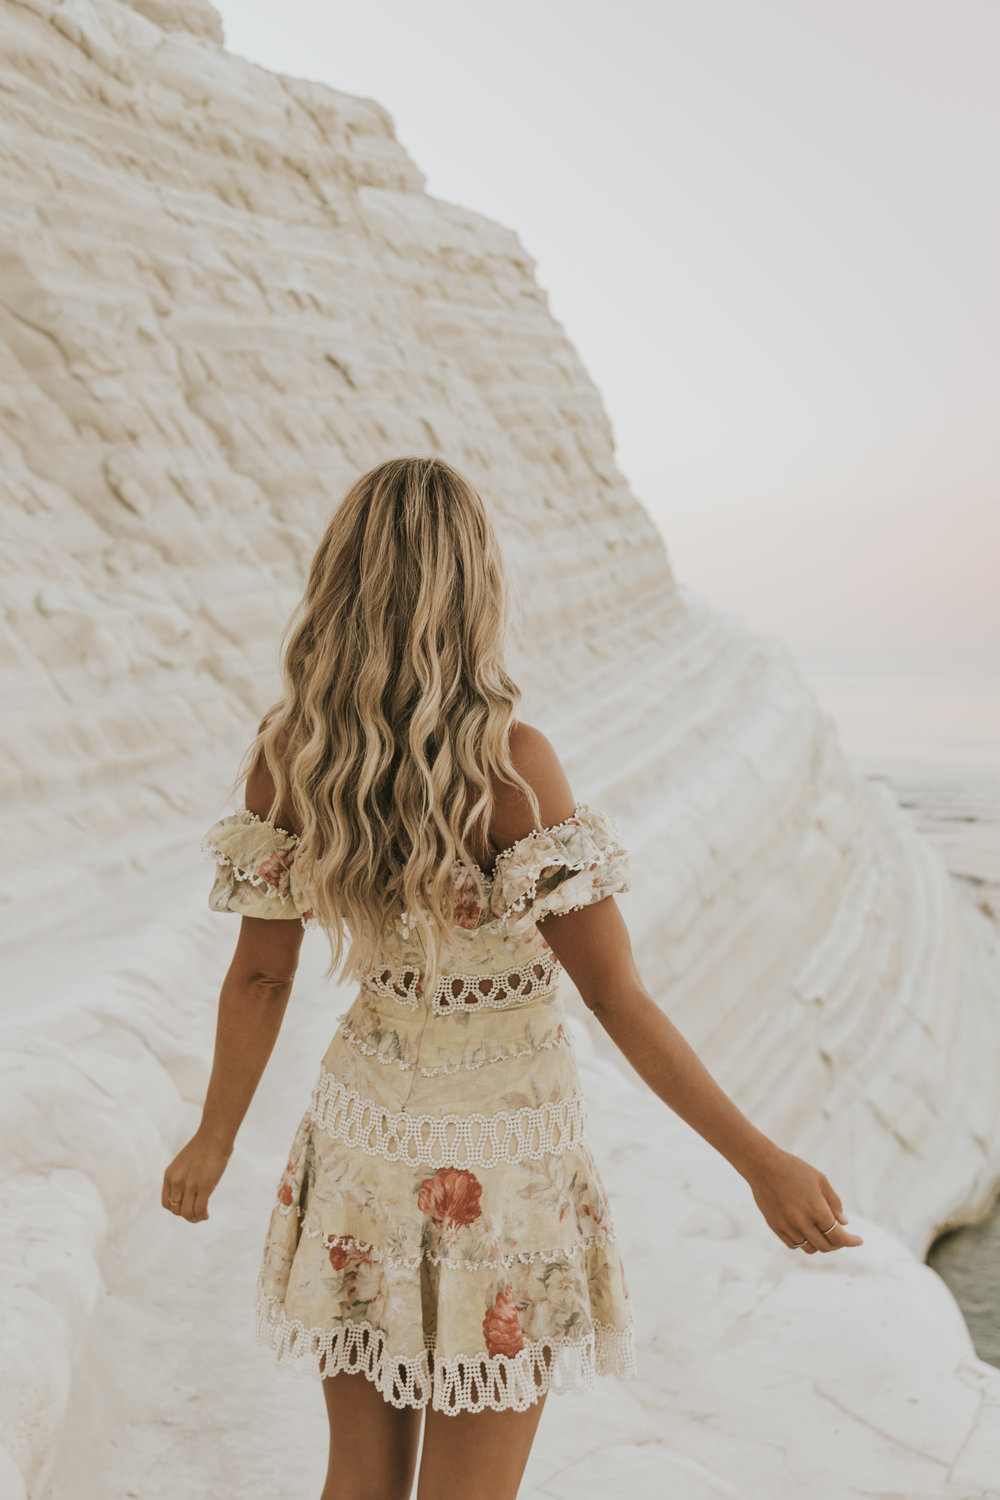 Photos by Allison Kuhl LPA Dress via Revolve | Luxe Fashion Label Dress | Zimmermann Dress | Sara Fox Dress | White Fox Boutique Dress